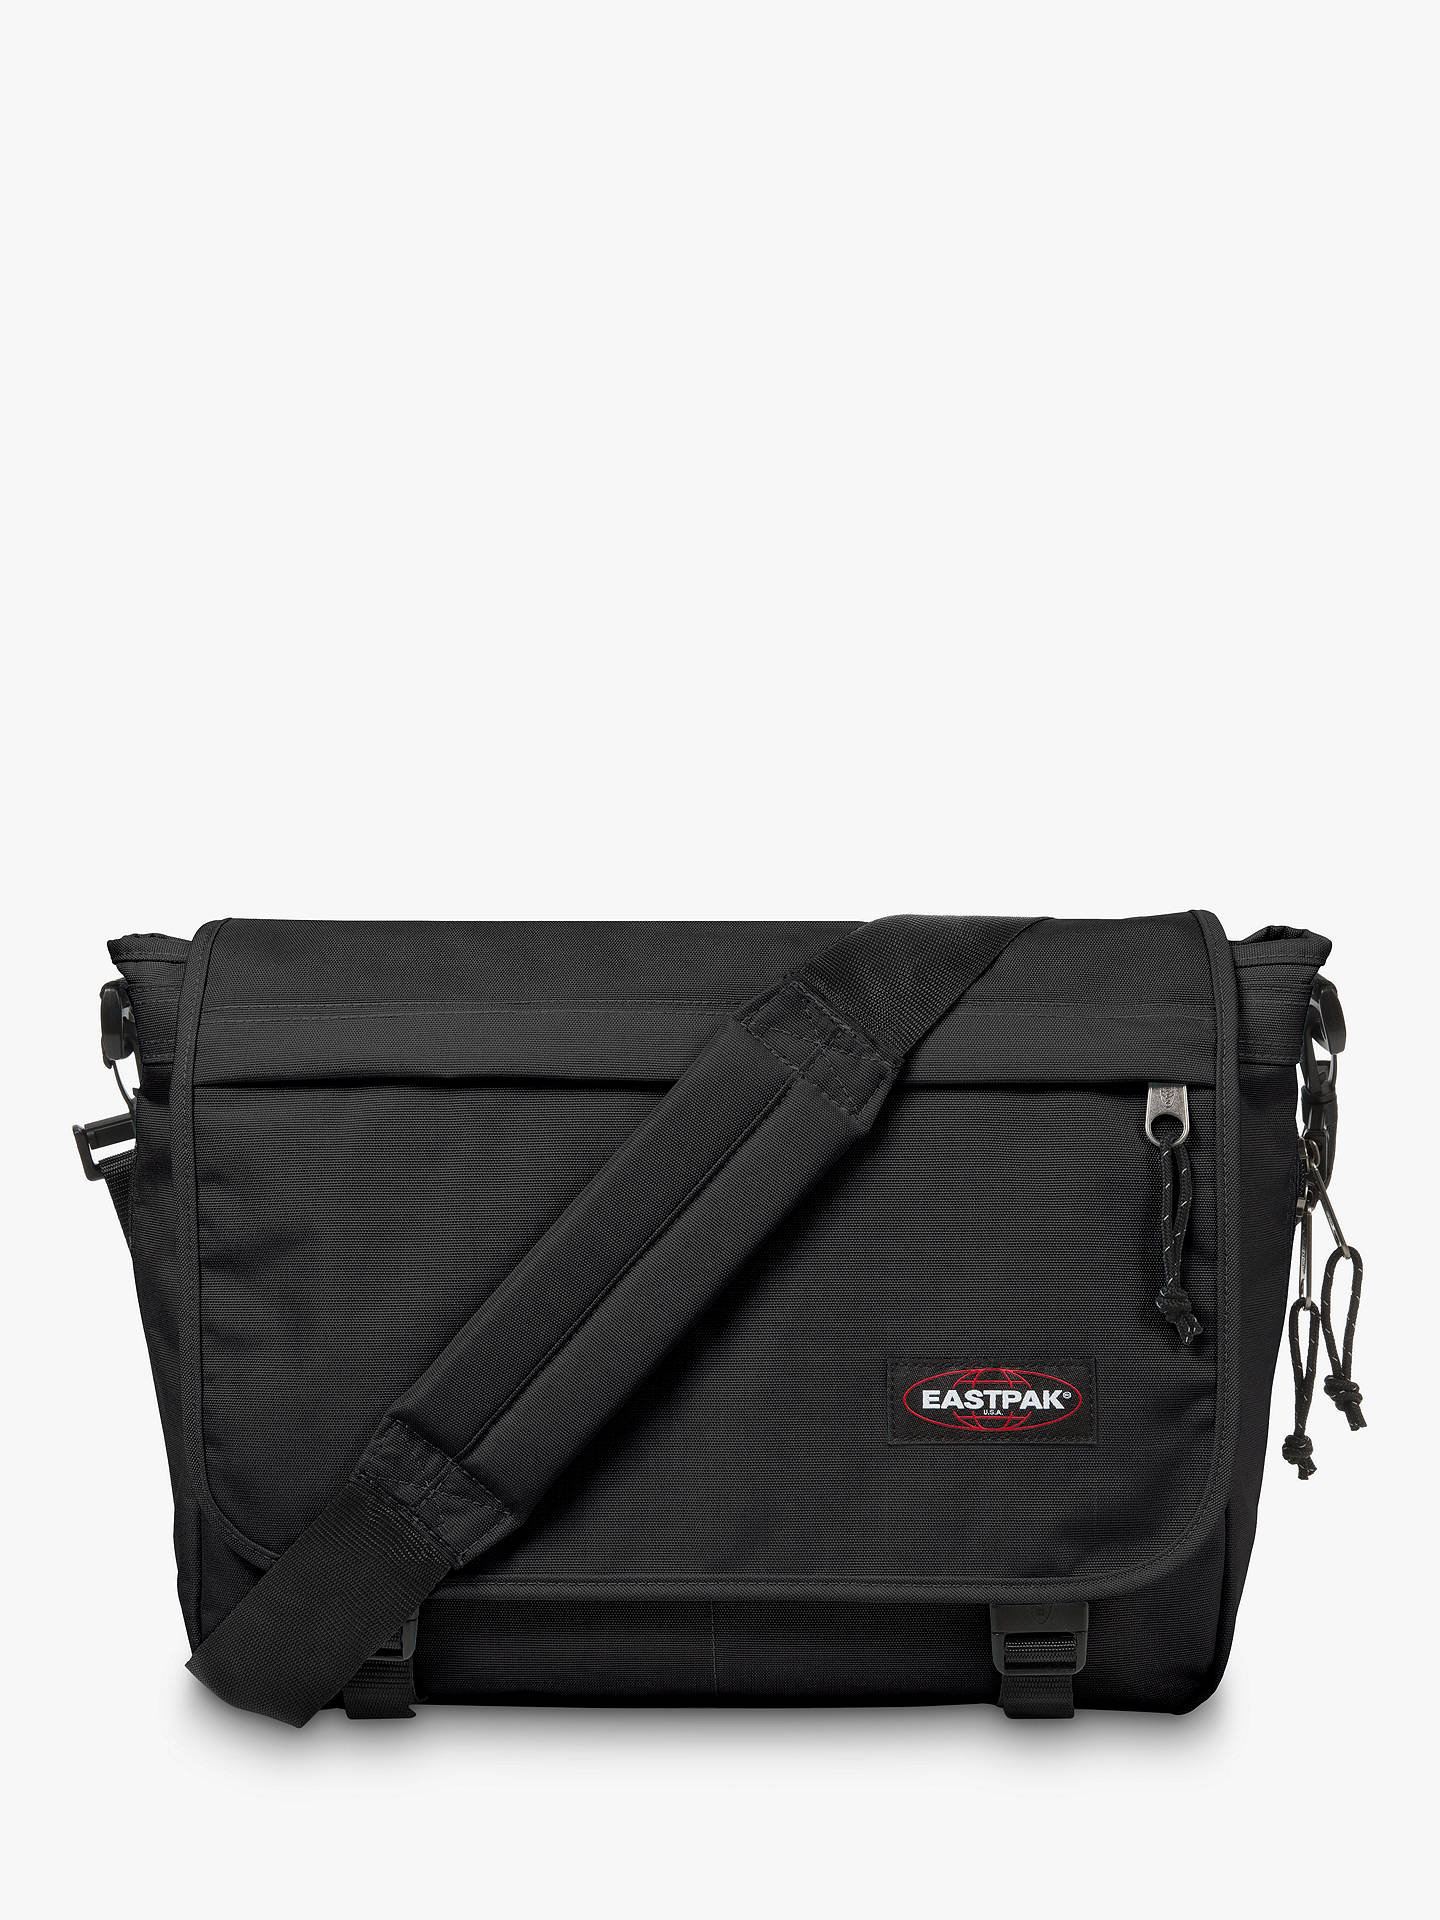 be5fd85c38 Buy Eastpak Delegate Authentic Messenger Bag, Black Online at johnlewis.com  ...